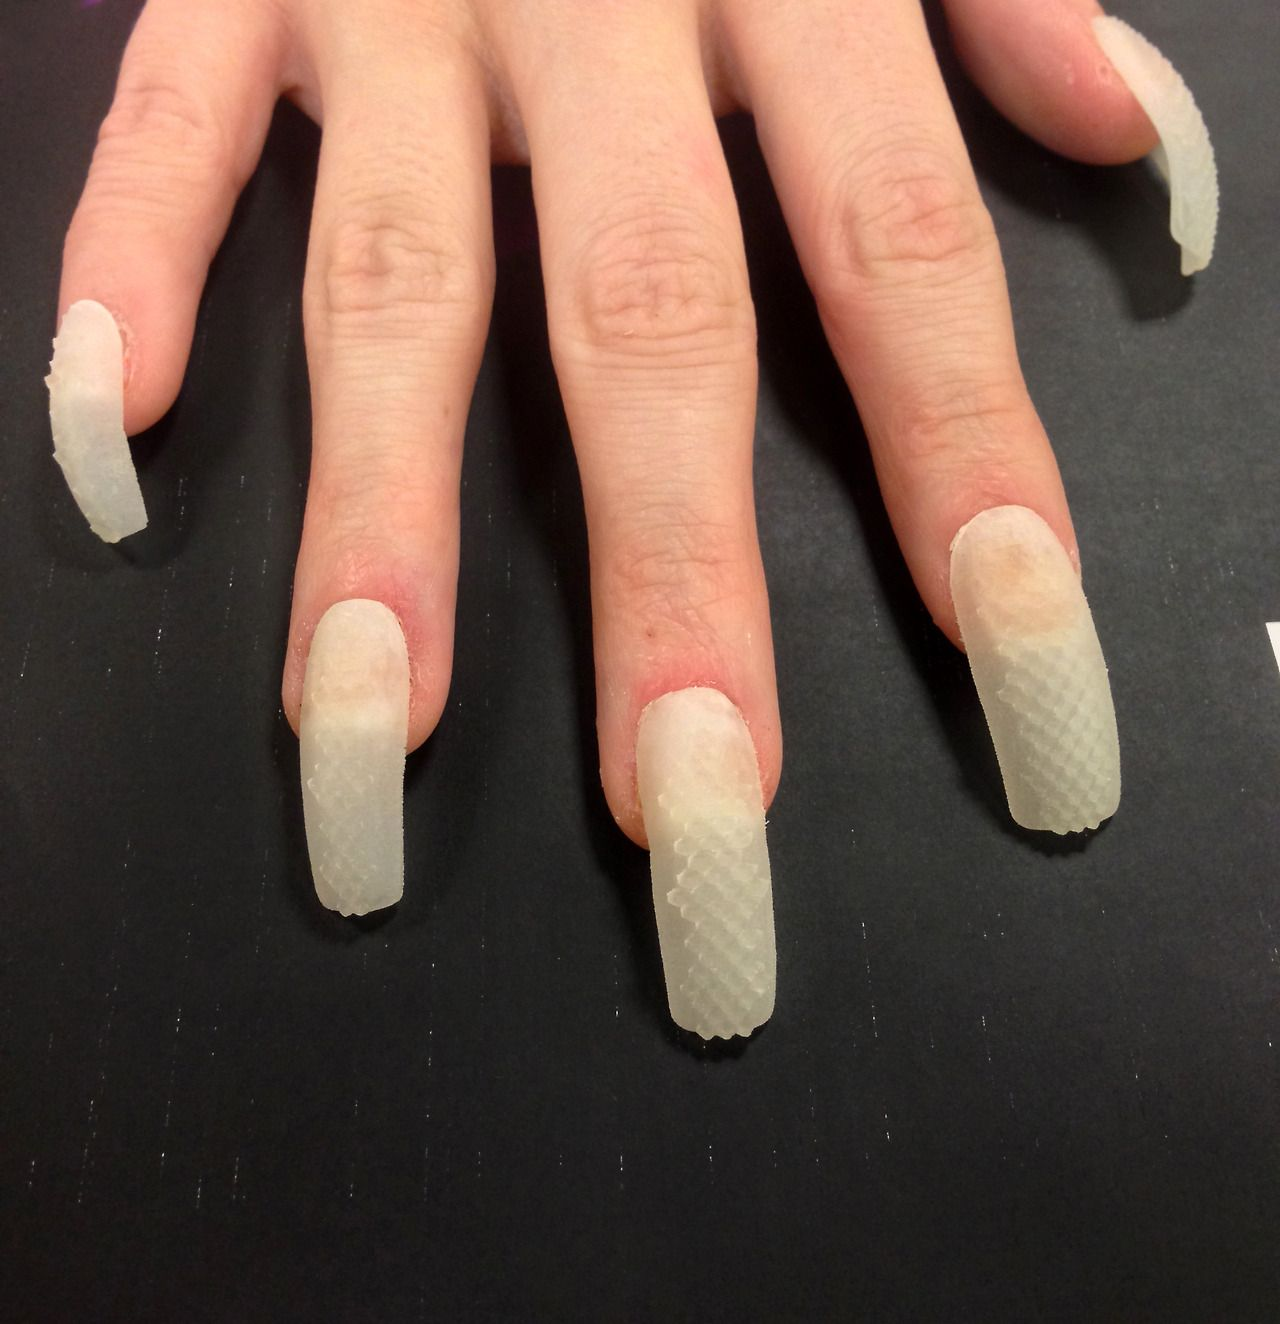 3d Printing By Thelasergirls 3d Printing Manicure Prints